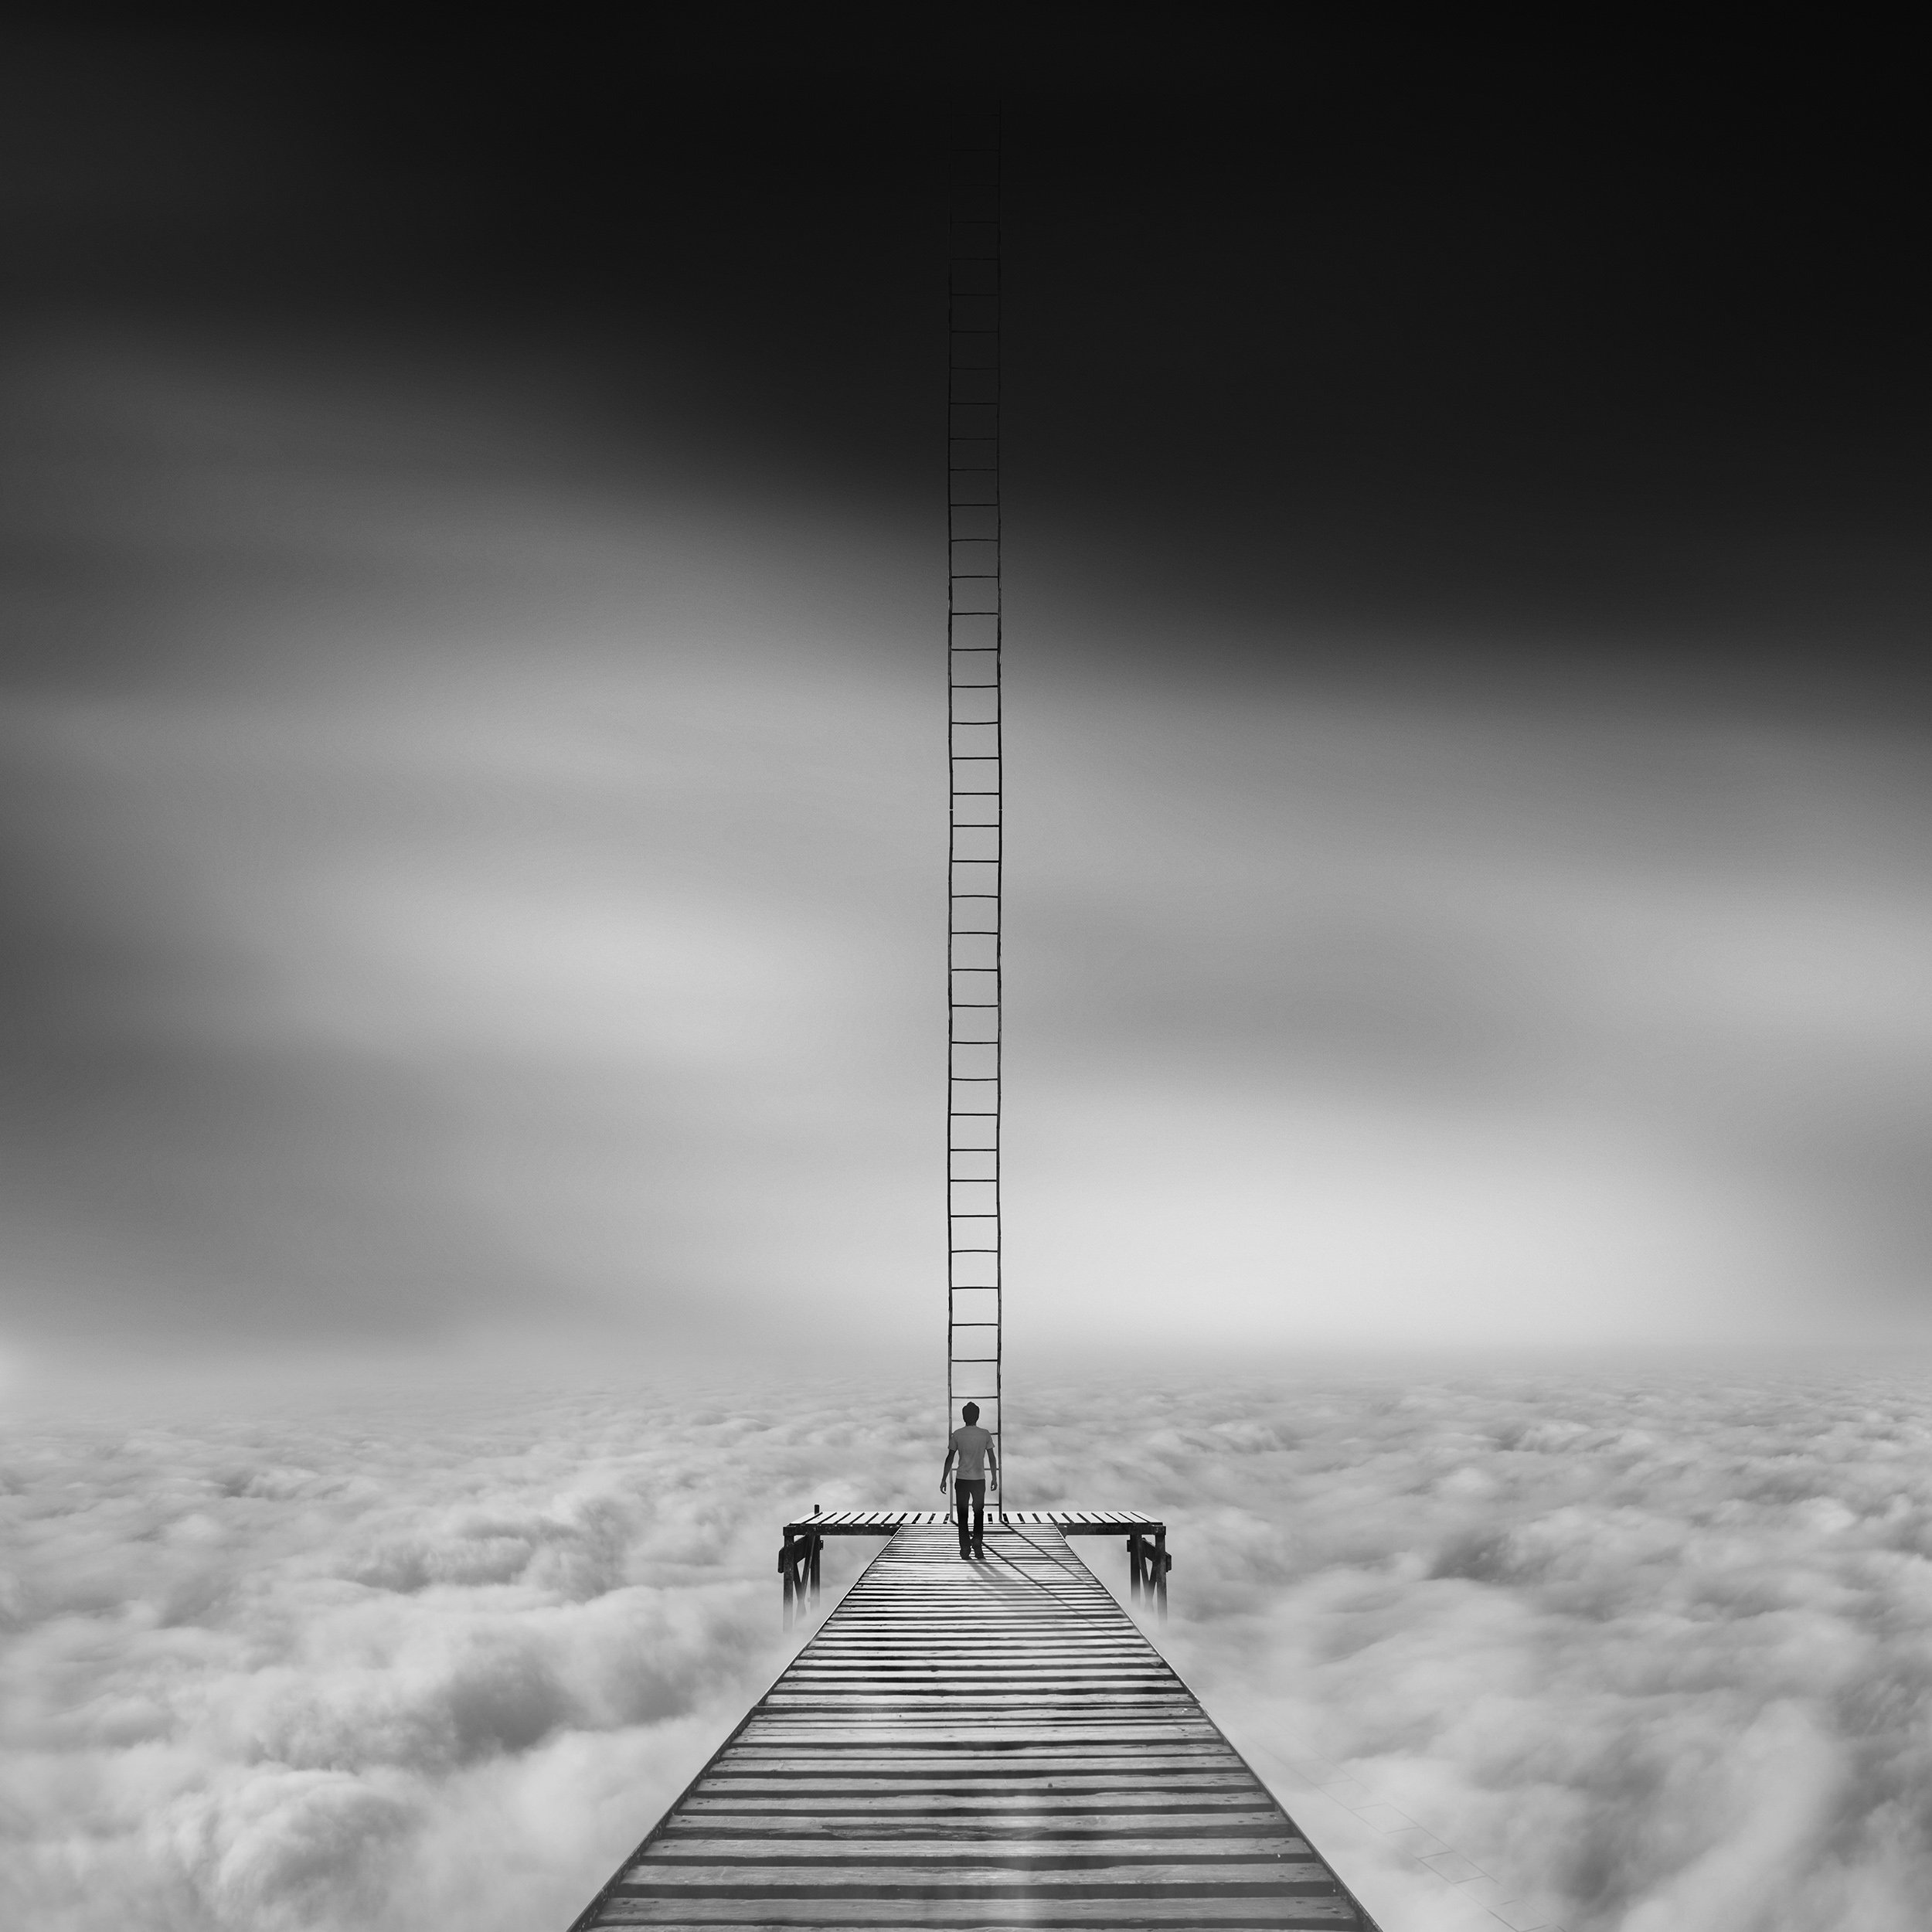 conceptual, fineart, creative, ladder, human, cloud, minimal,, Milad Safabakhsh